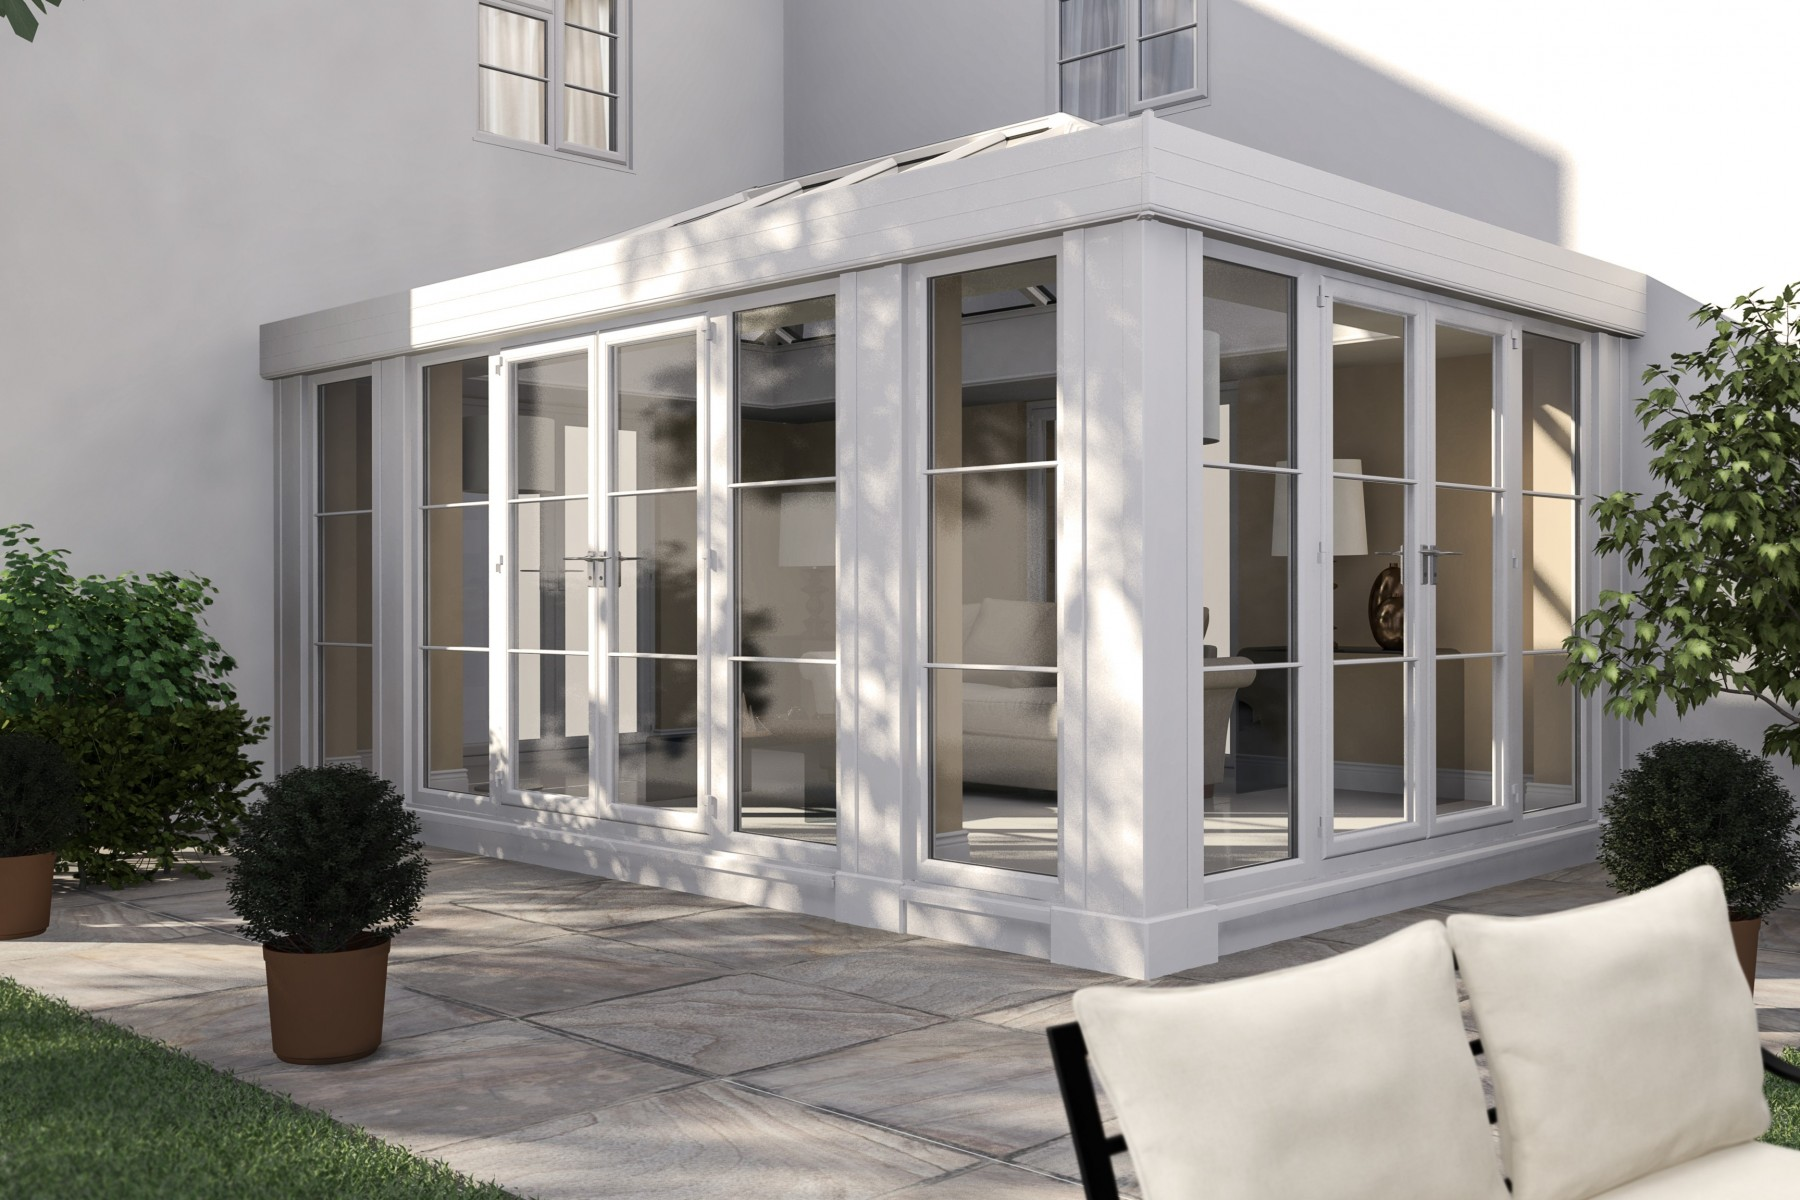 Orangery Prices Henley on Thames